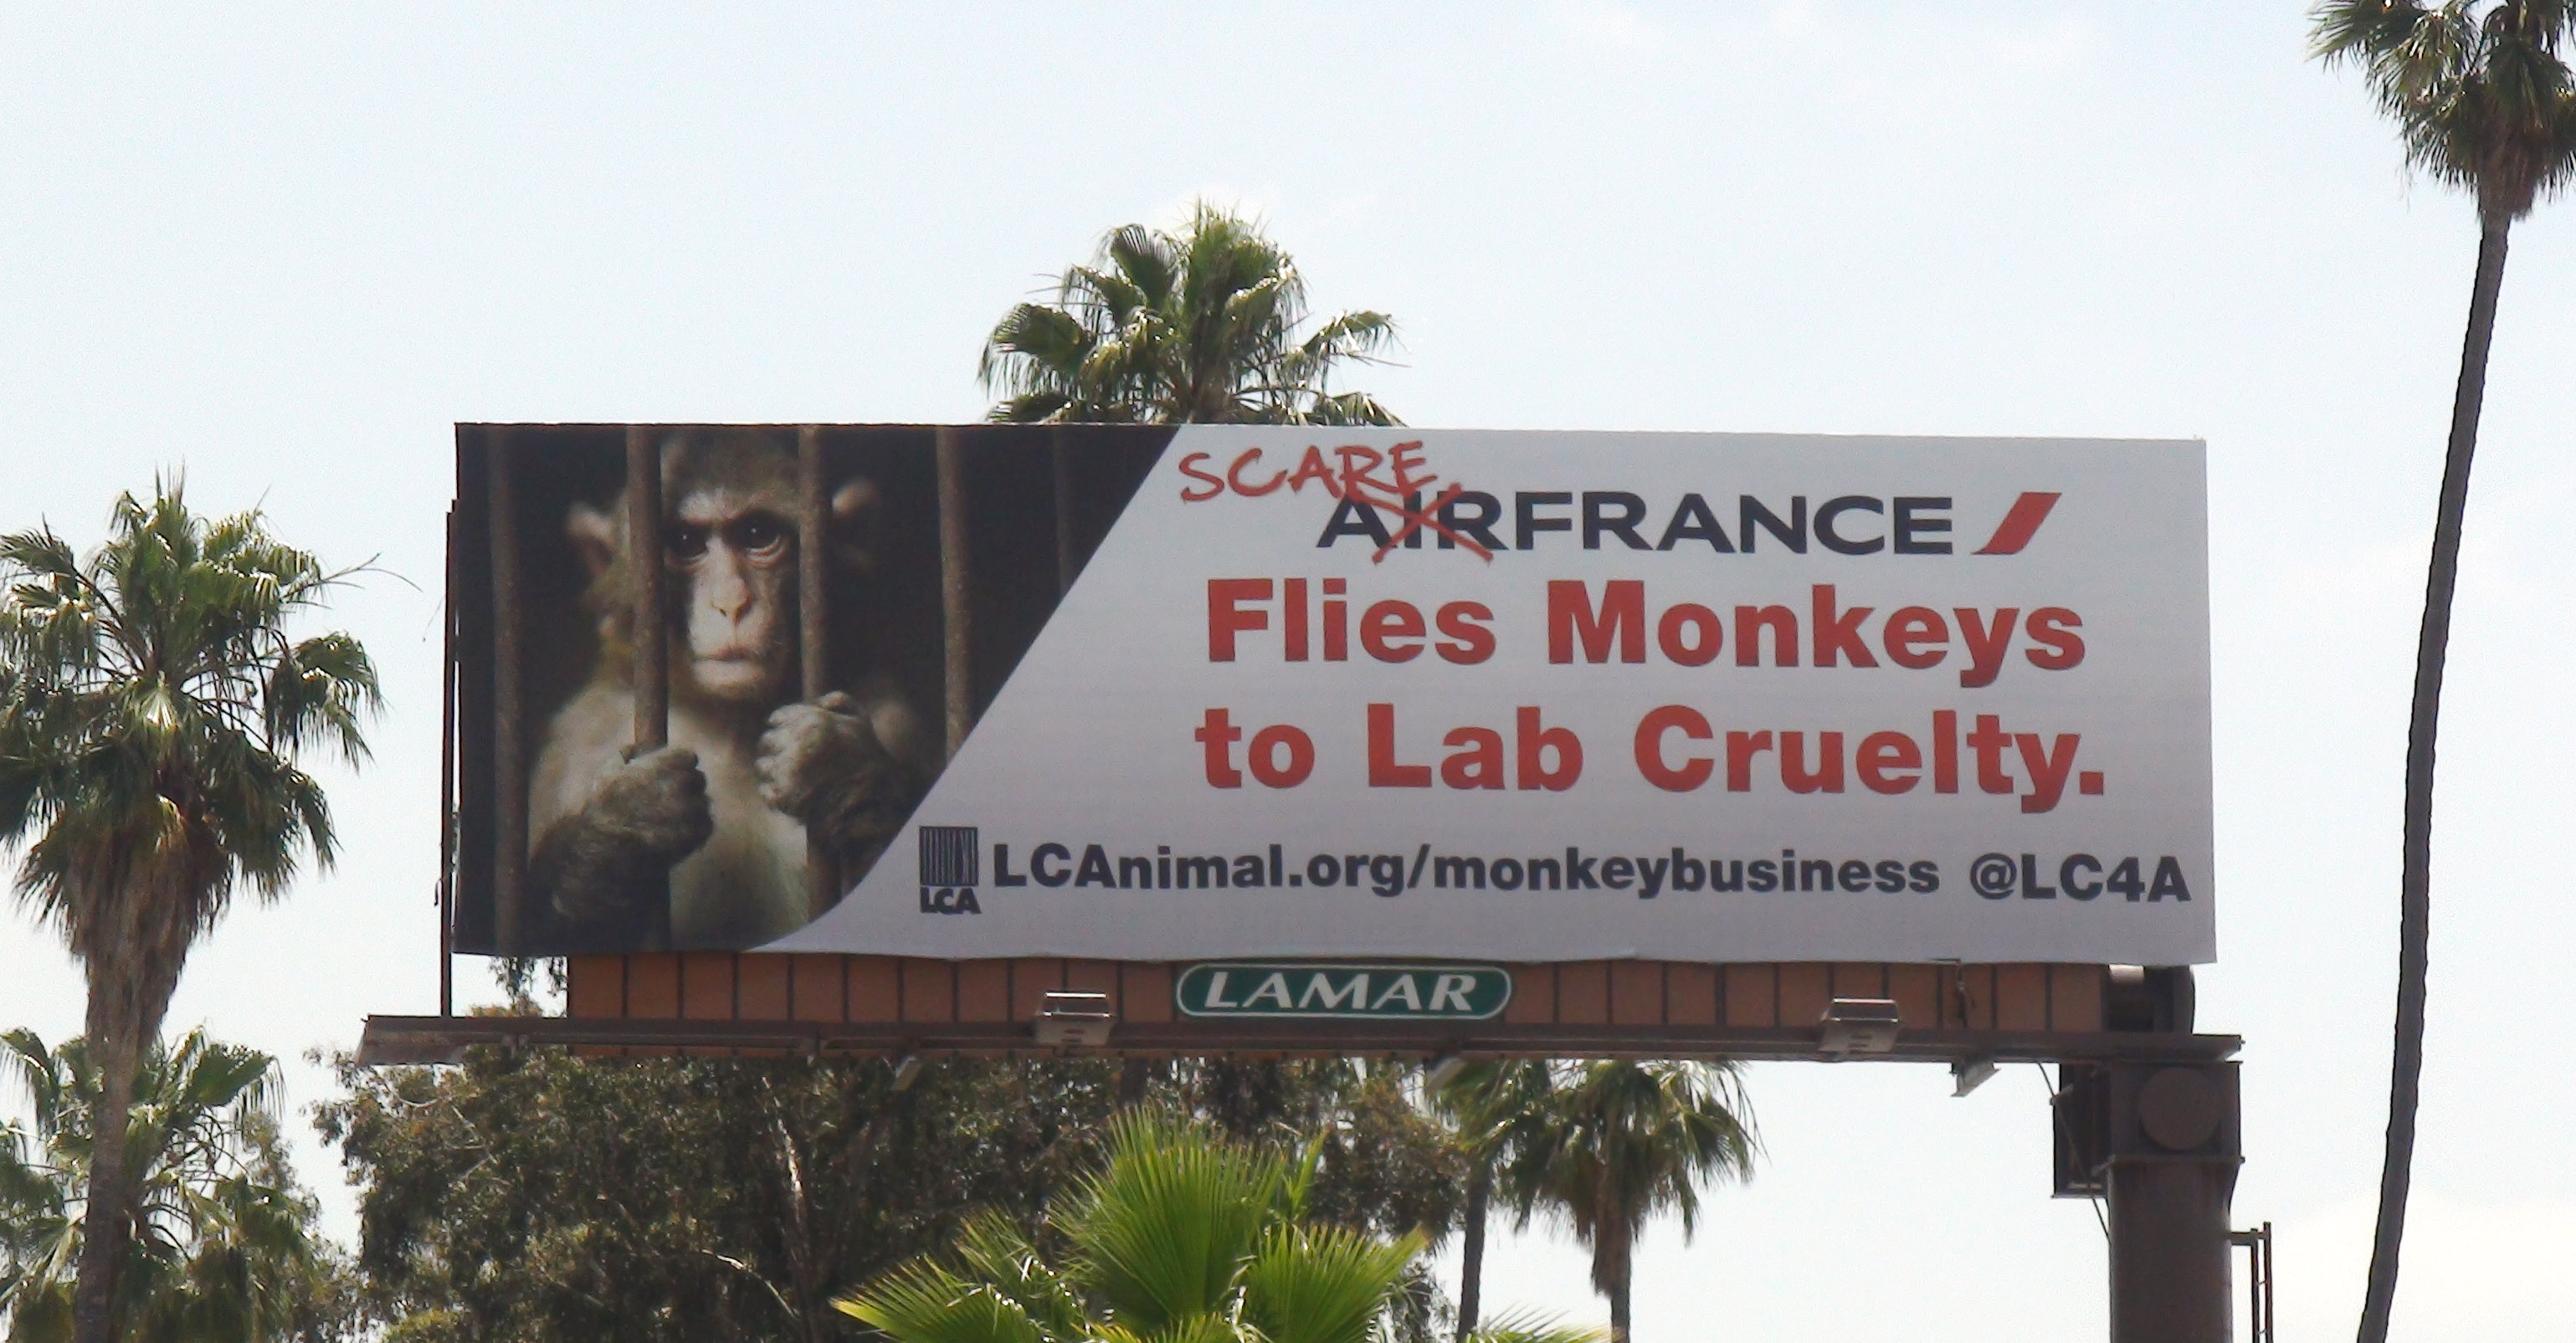 LCA's 'graffiti' billboard in Silverlake, CA for Air France Monkey Business campaign